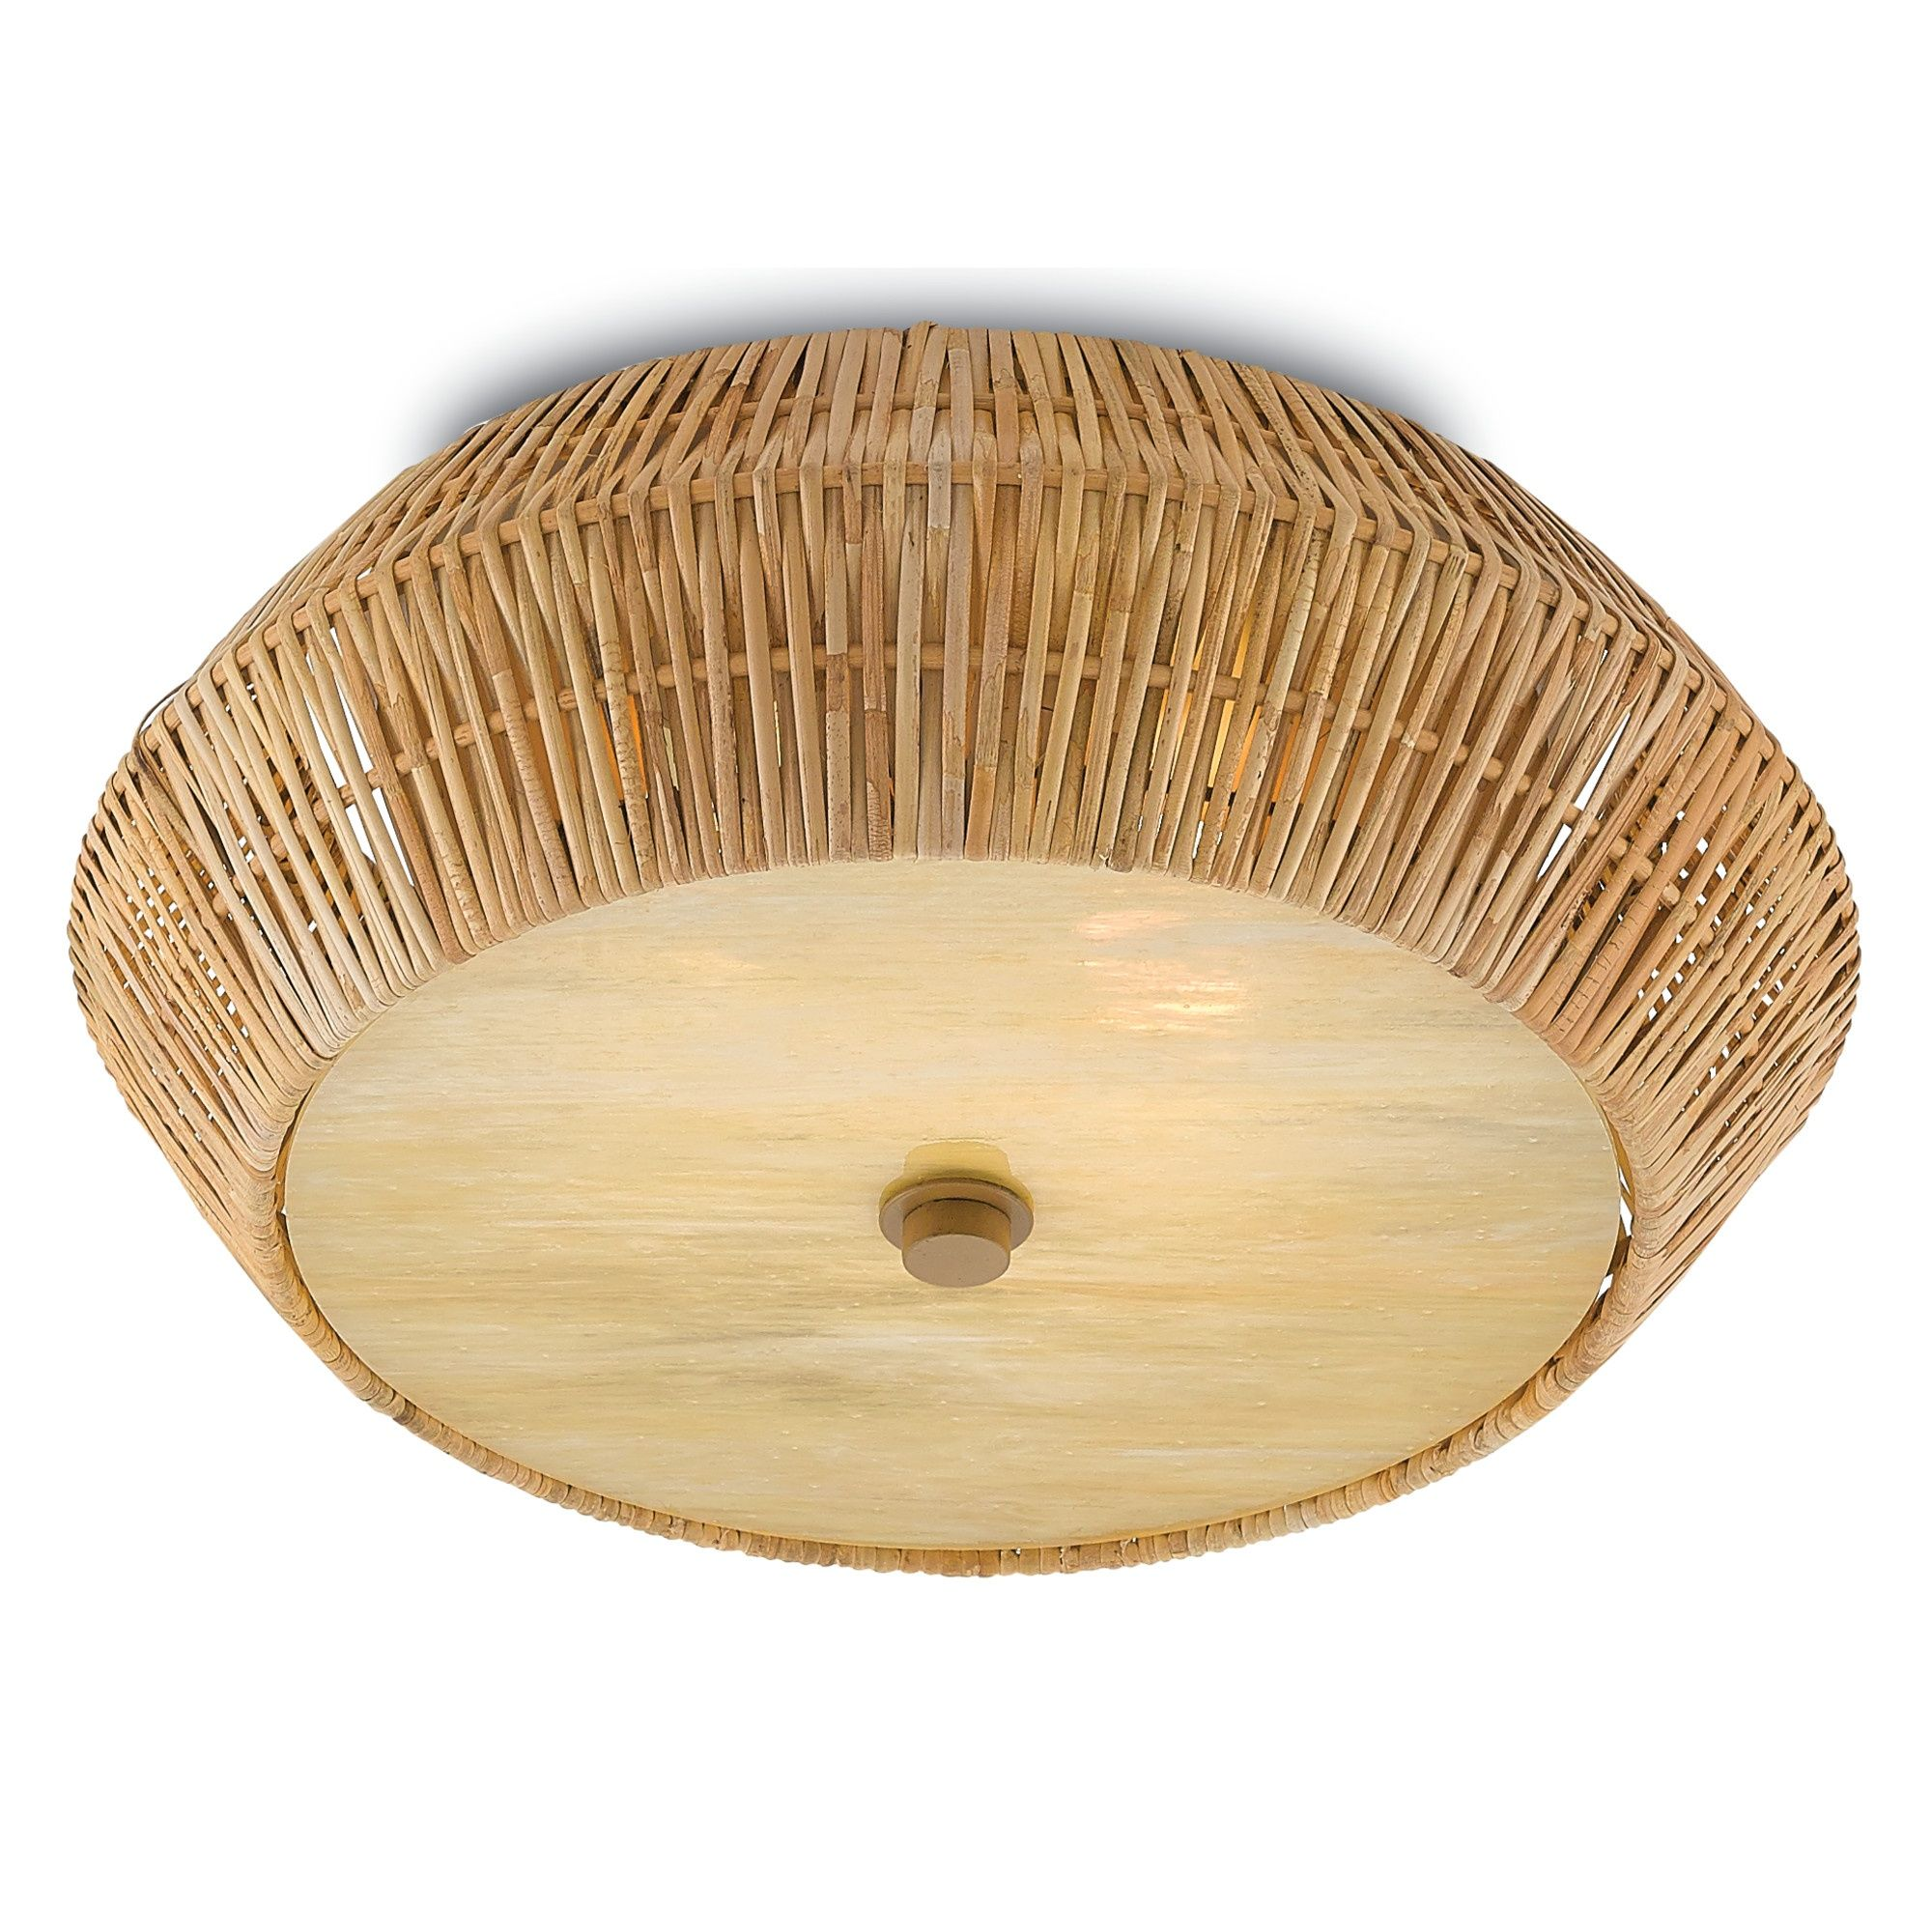 Rattan And Glass Flush Mount Two Lights With GU24 Bulb Type Maximum Wattage 26 Rec RoomsDining RoomsHallway LightingCeiling